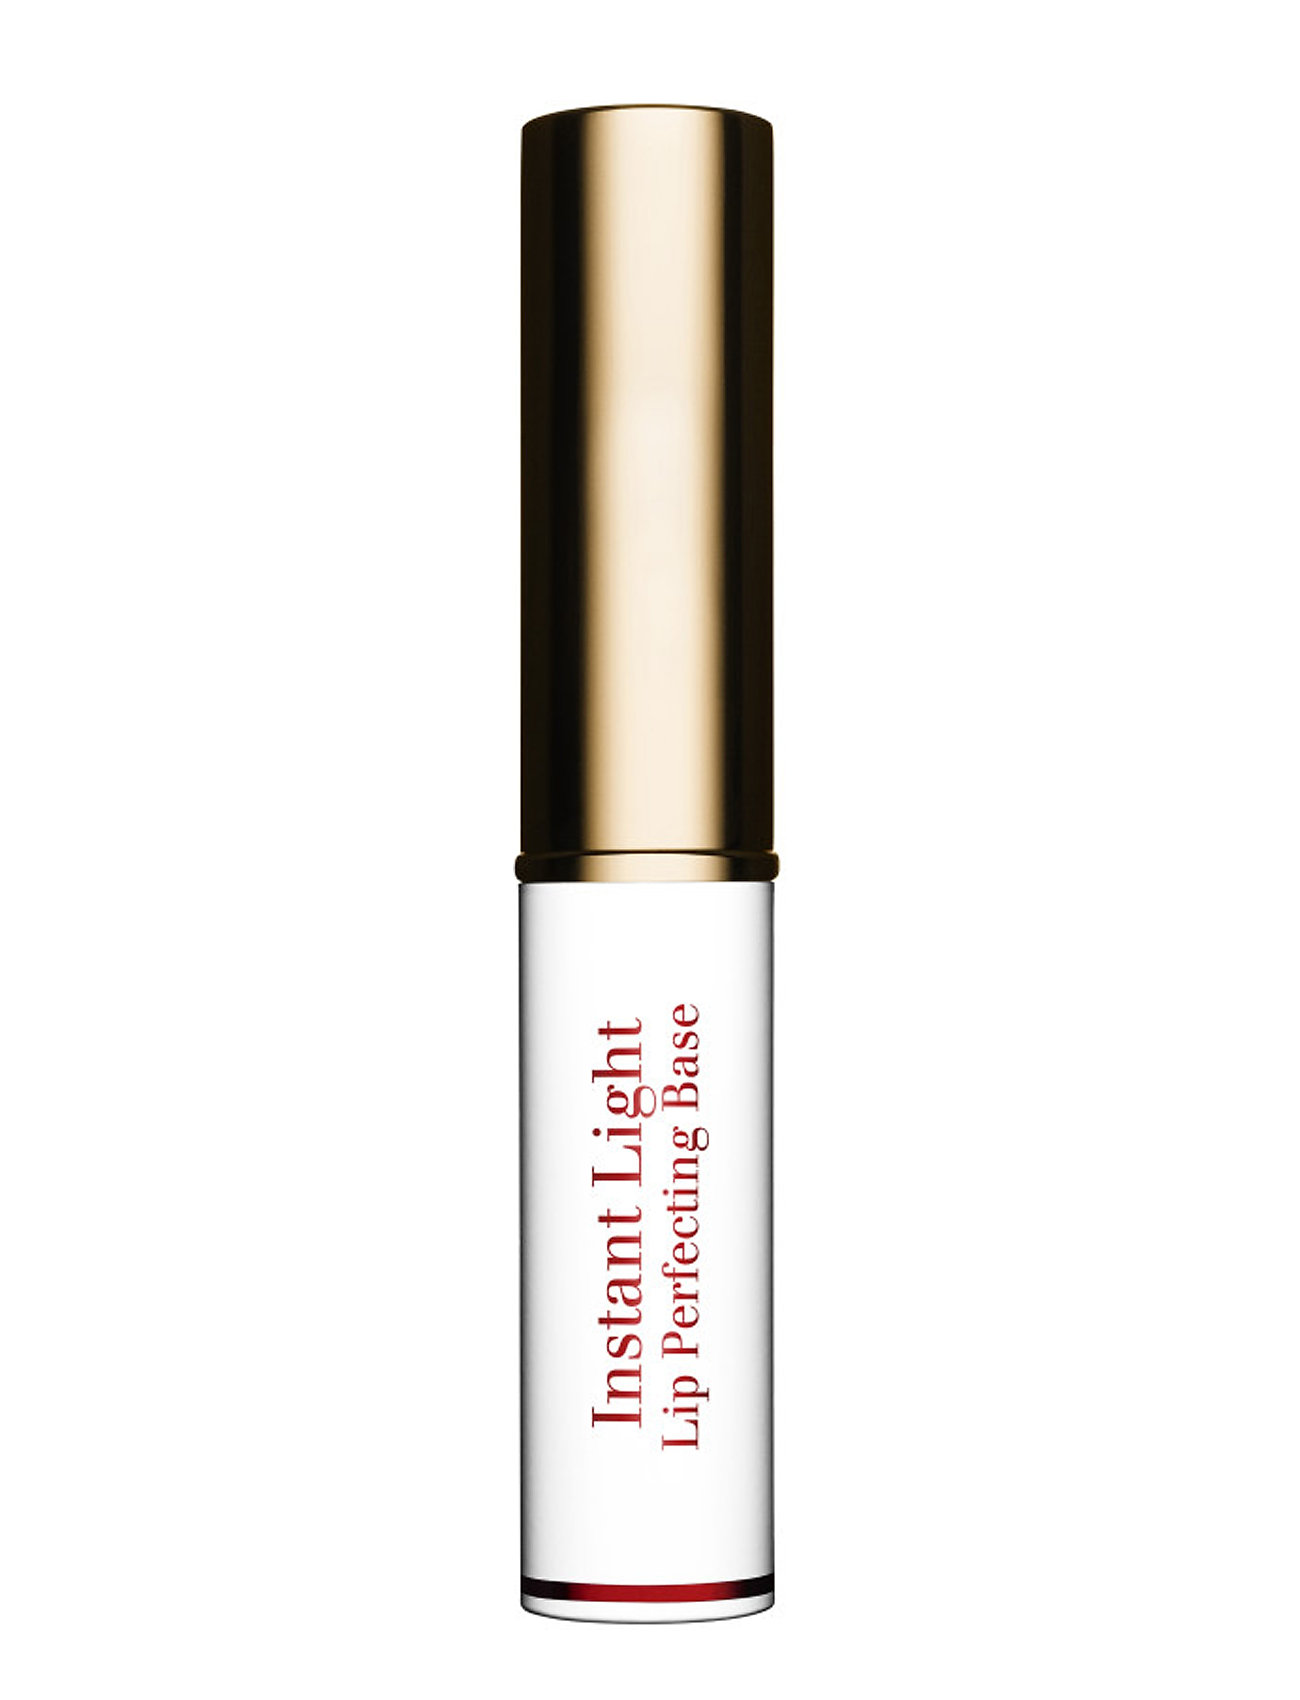 Image of Instant Light Perfecting Base Lip Base Læbestift Makeup Nude Clarins (3200047655)